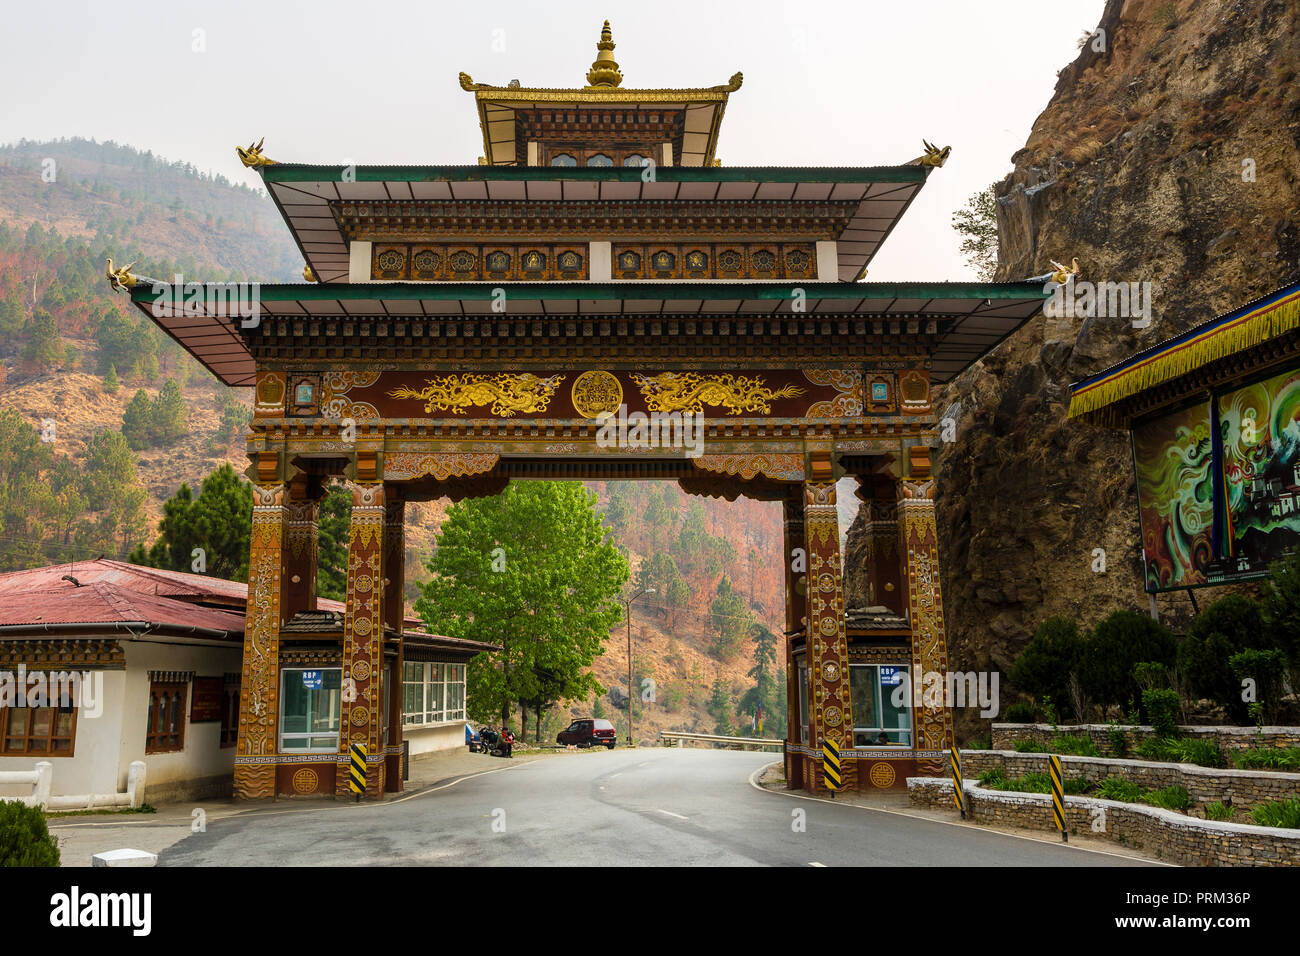 A colourful gate with ornate design on a highway road in Bhutan - Stock Image